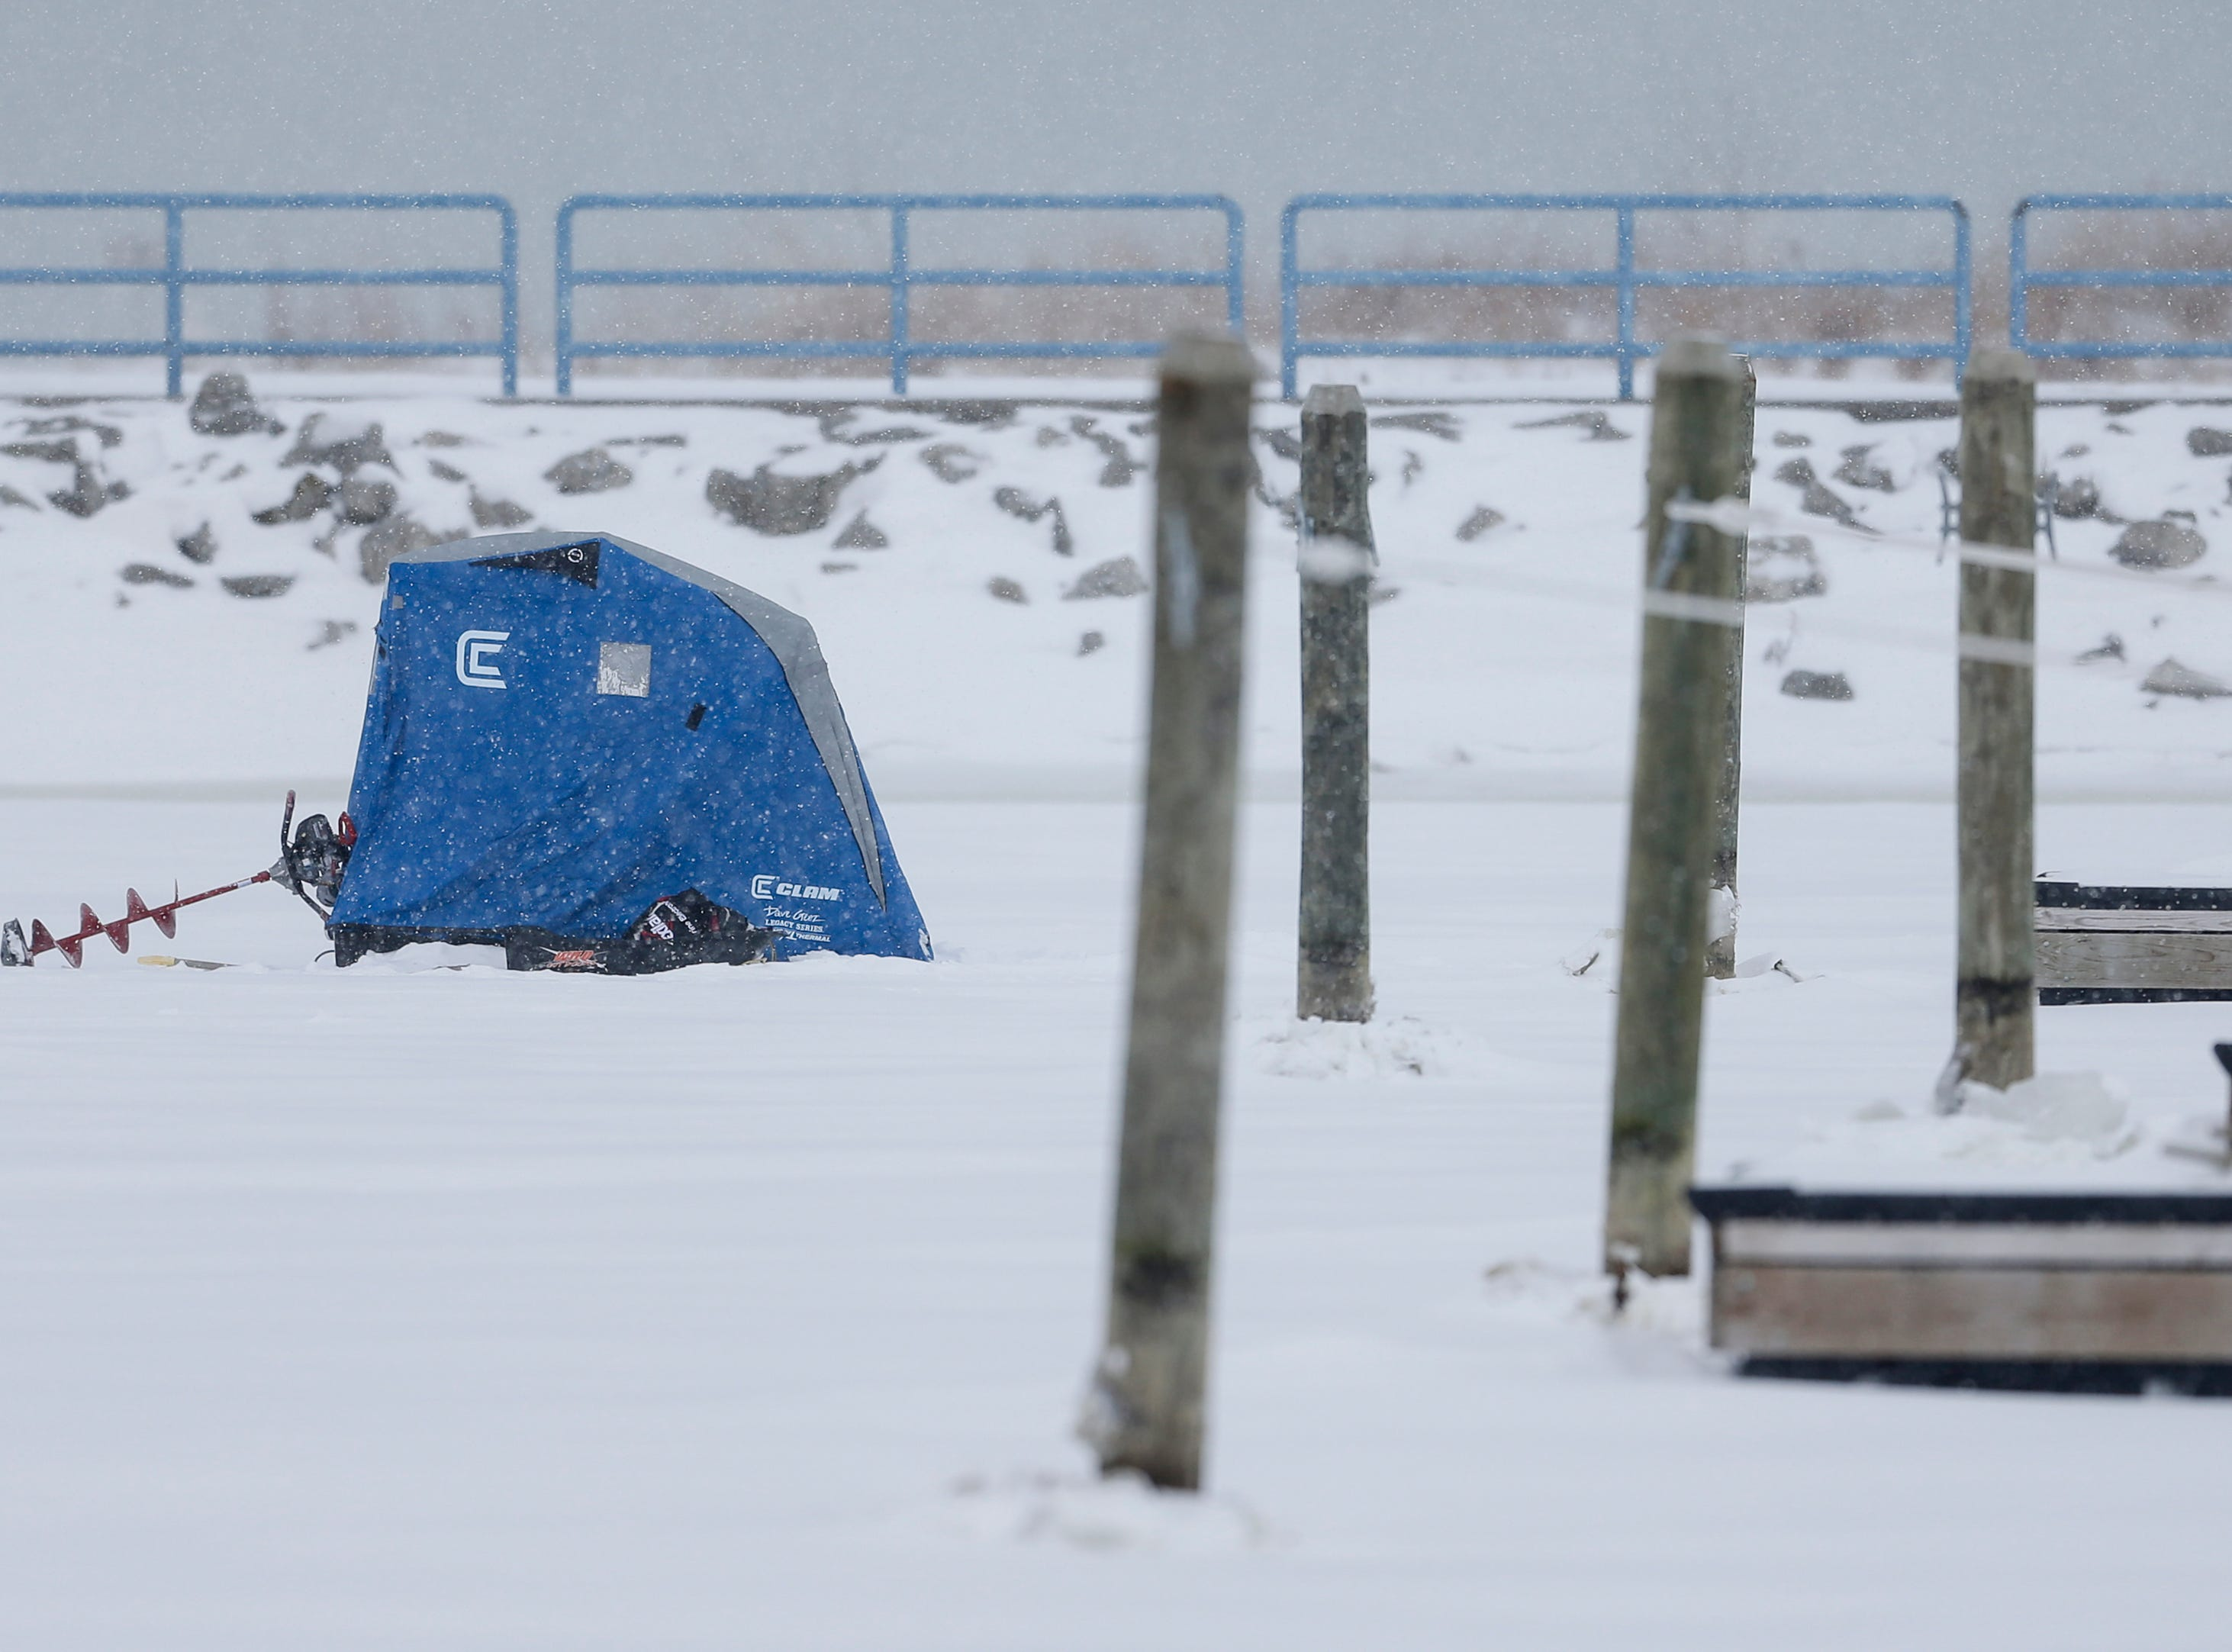 An ice fishing shelter sits on the Manitowoc harbor during a snowstorm Wednesday, January 23, 2019, in Manitowoc, Wis. Joshua Clark/USA TODAY NETWORK-Wisconsin